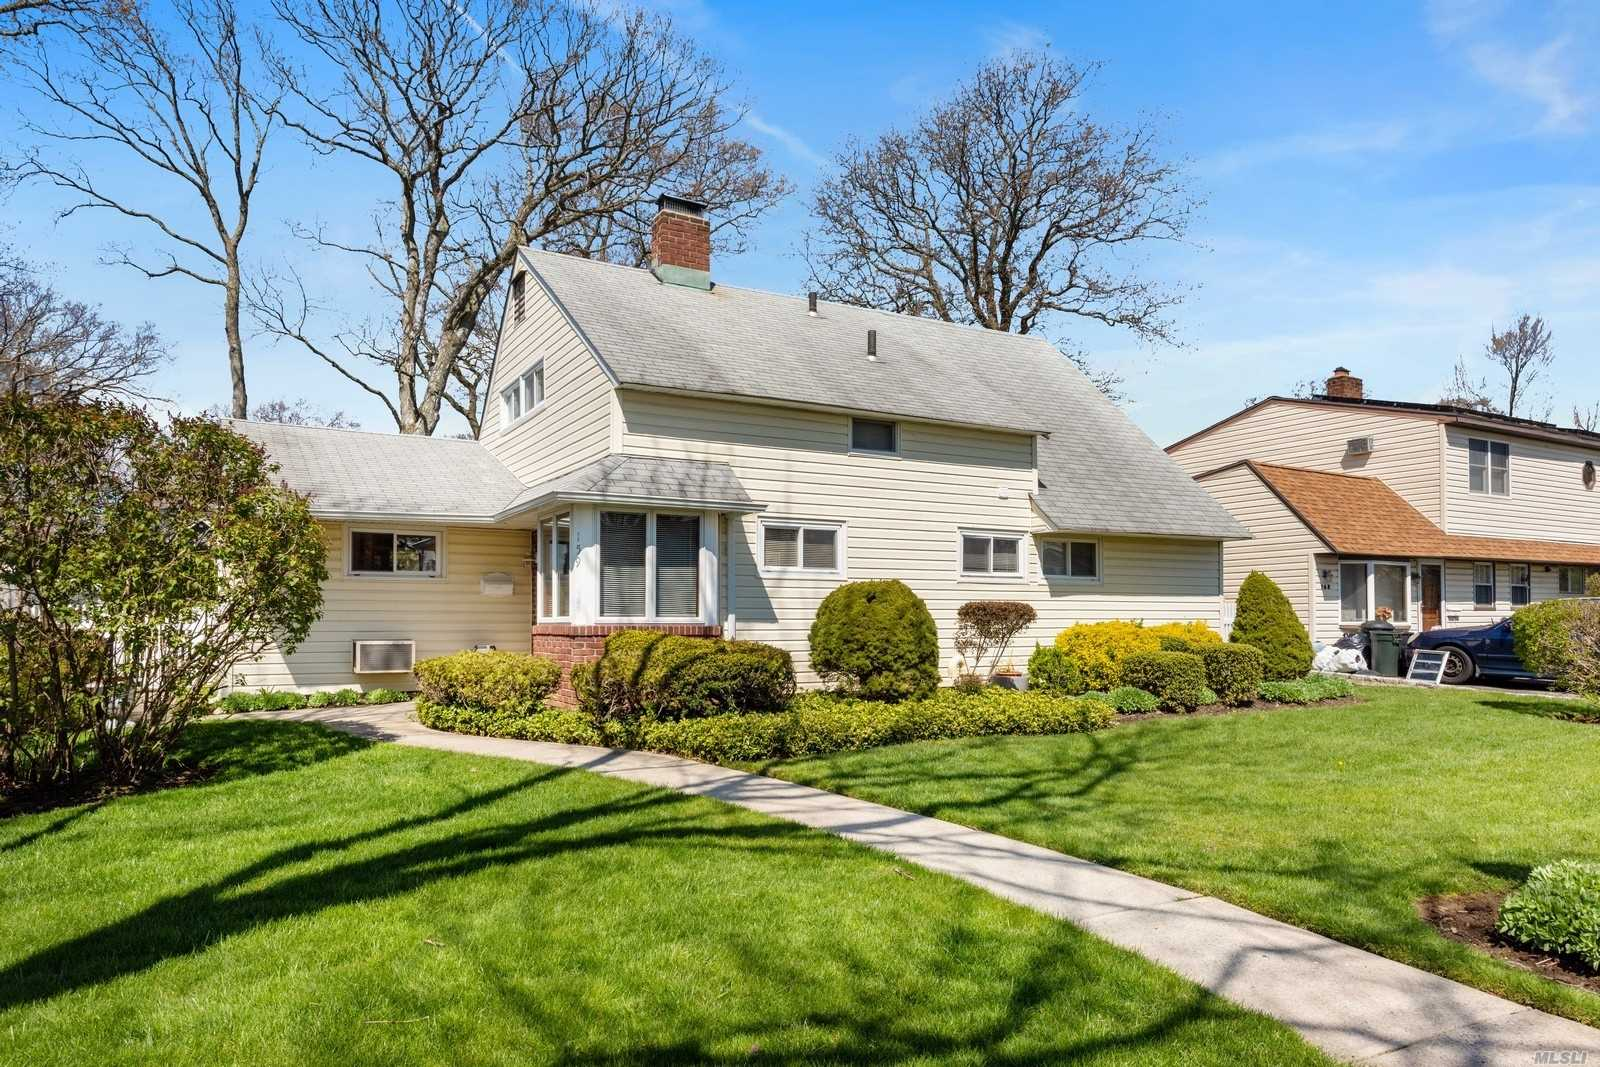 159 Twin Lane N, Wantagh, New York